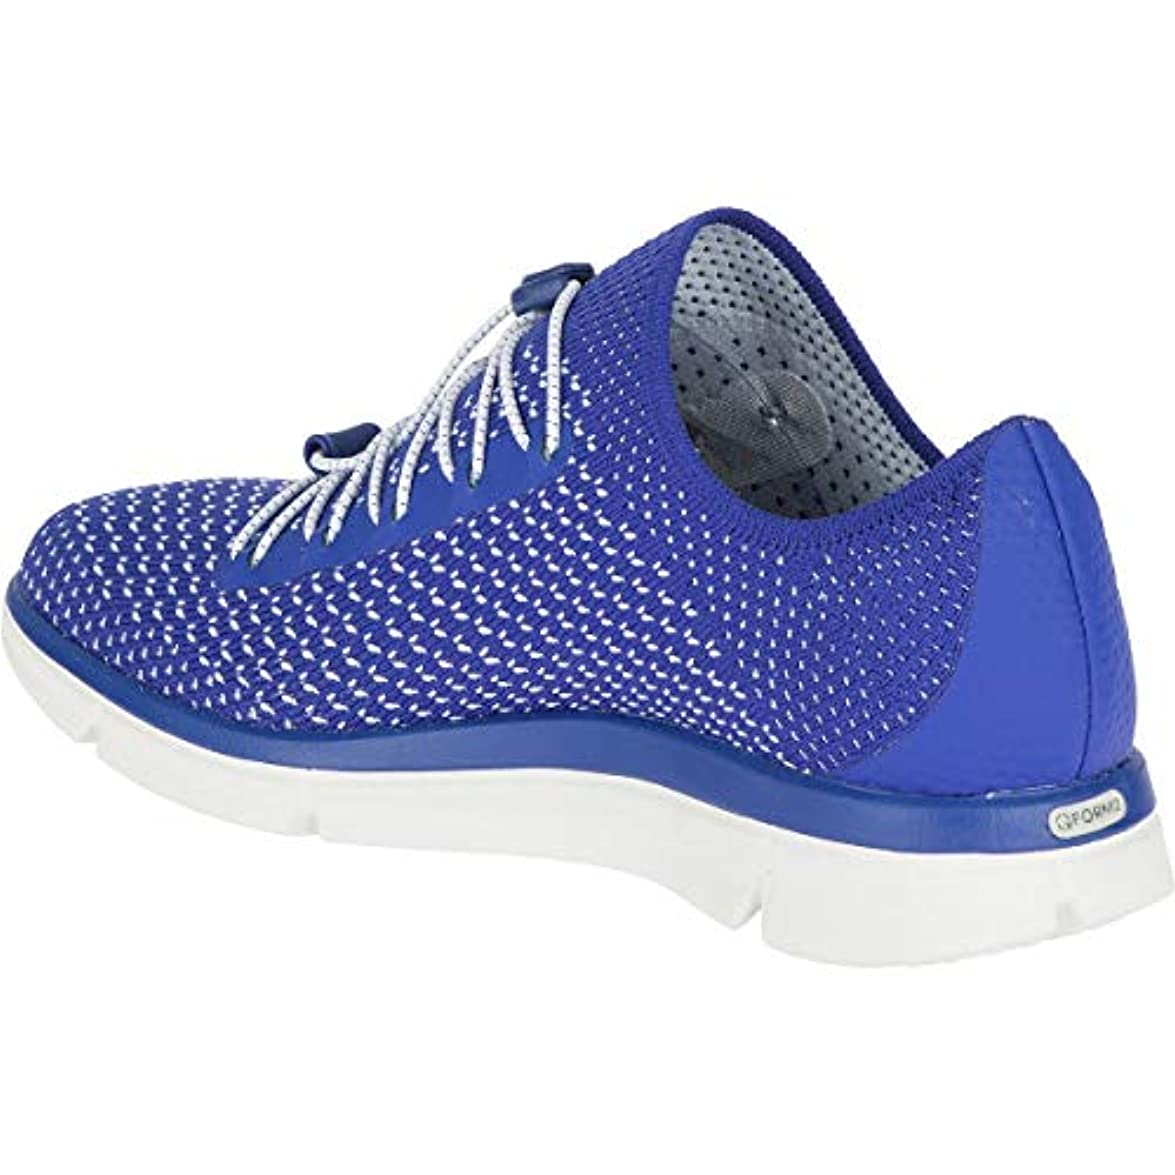 Merrell Women's Zoe Sojourn Lace Knit Q2 Sodalite 7 M Us